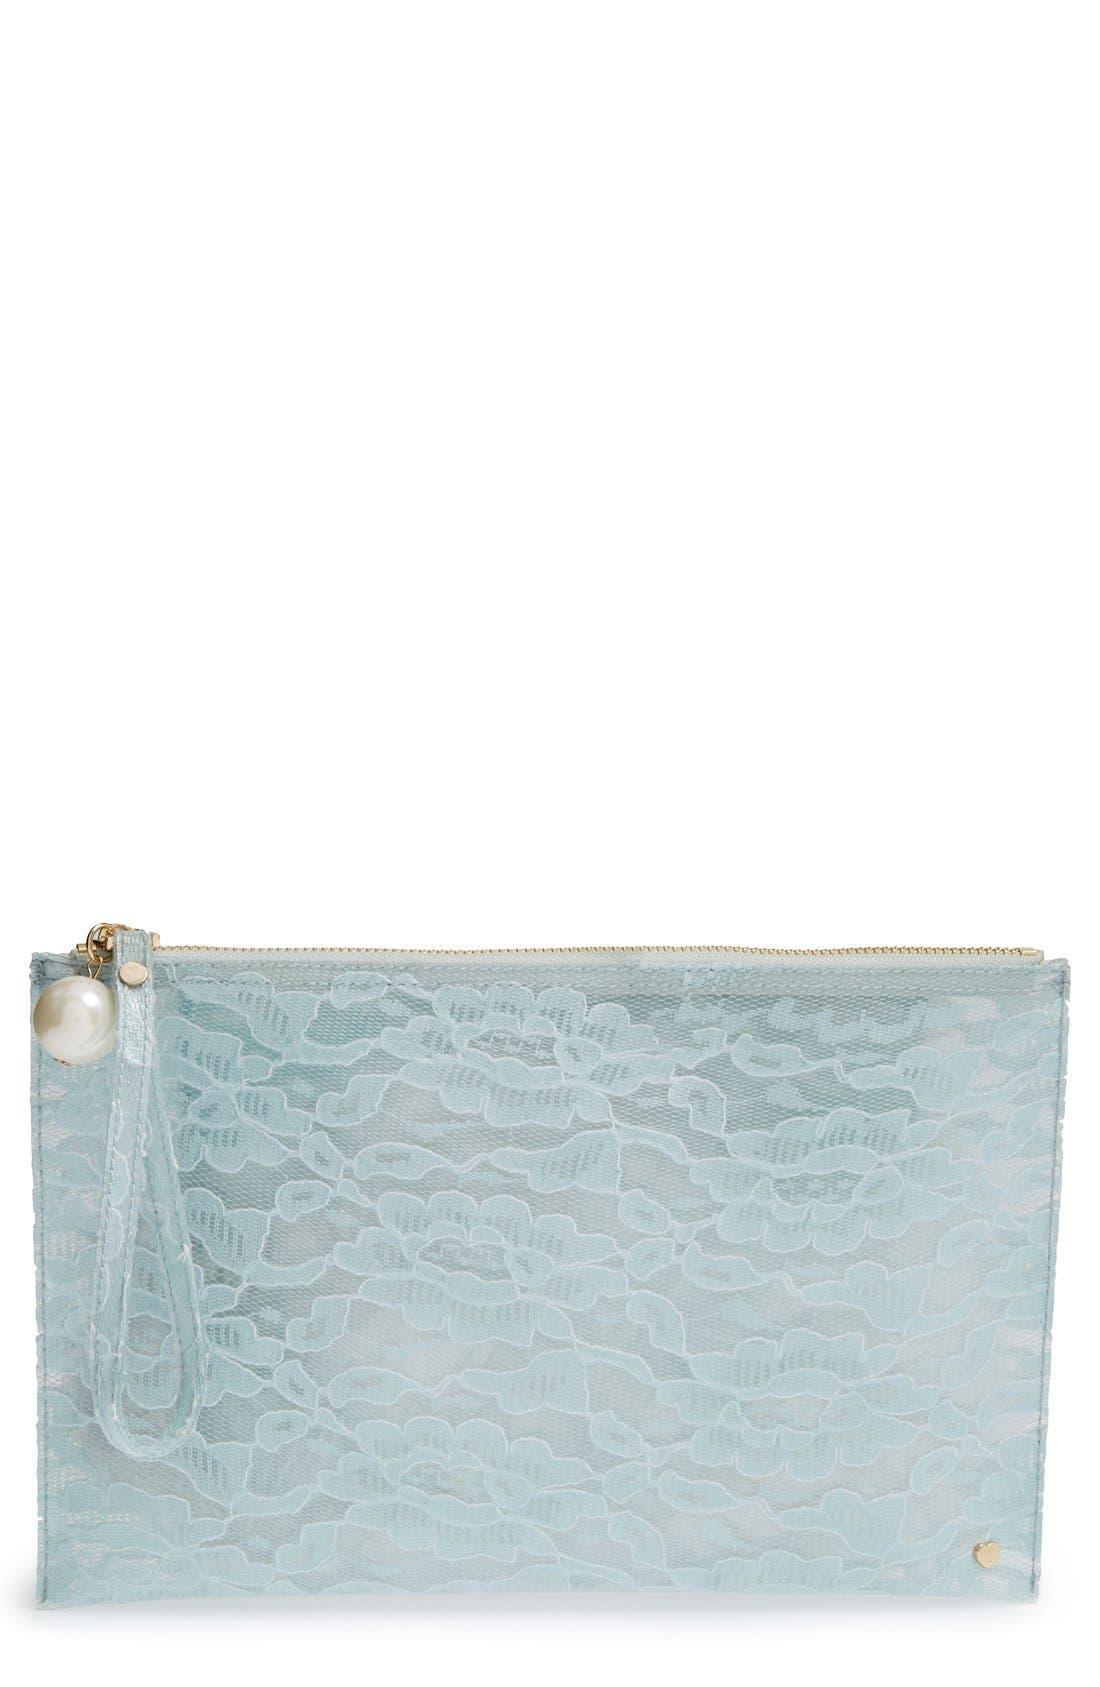 Alternate Image 1 Selected - Deux Lux 'Amour' Transparent Lace Jelly Pouch